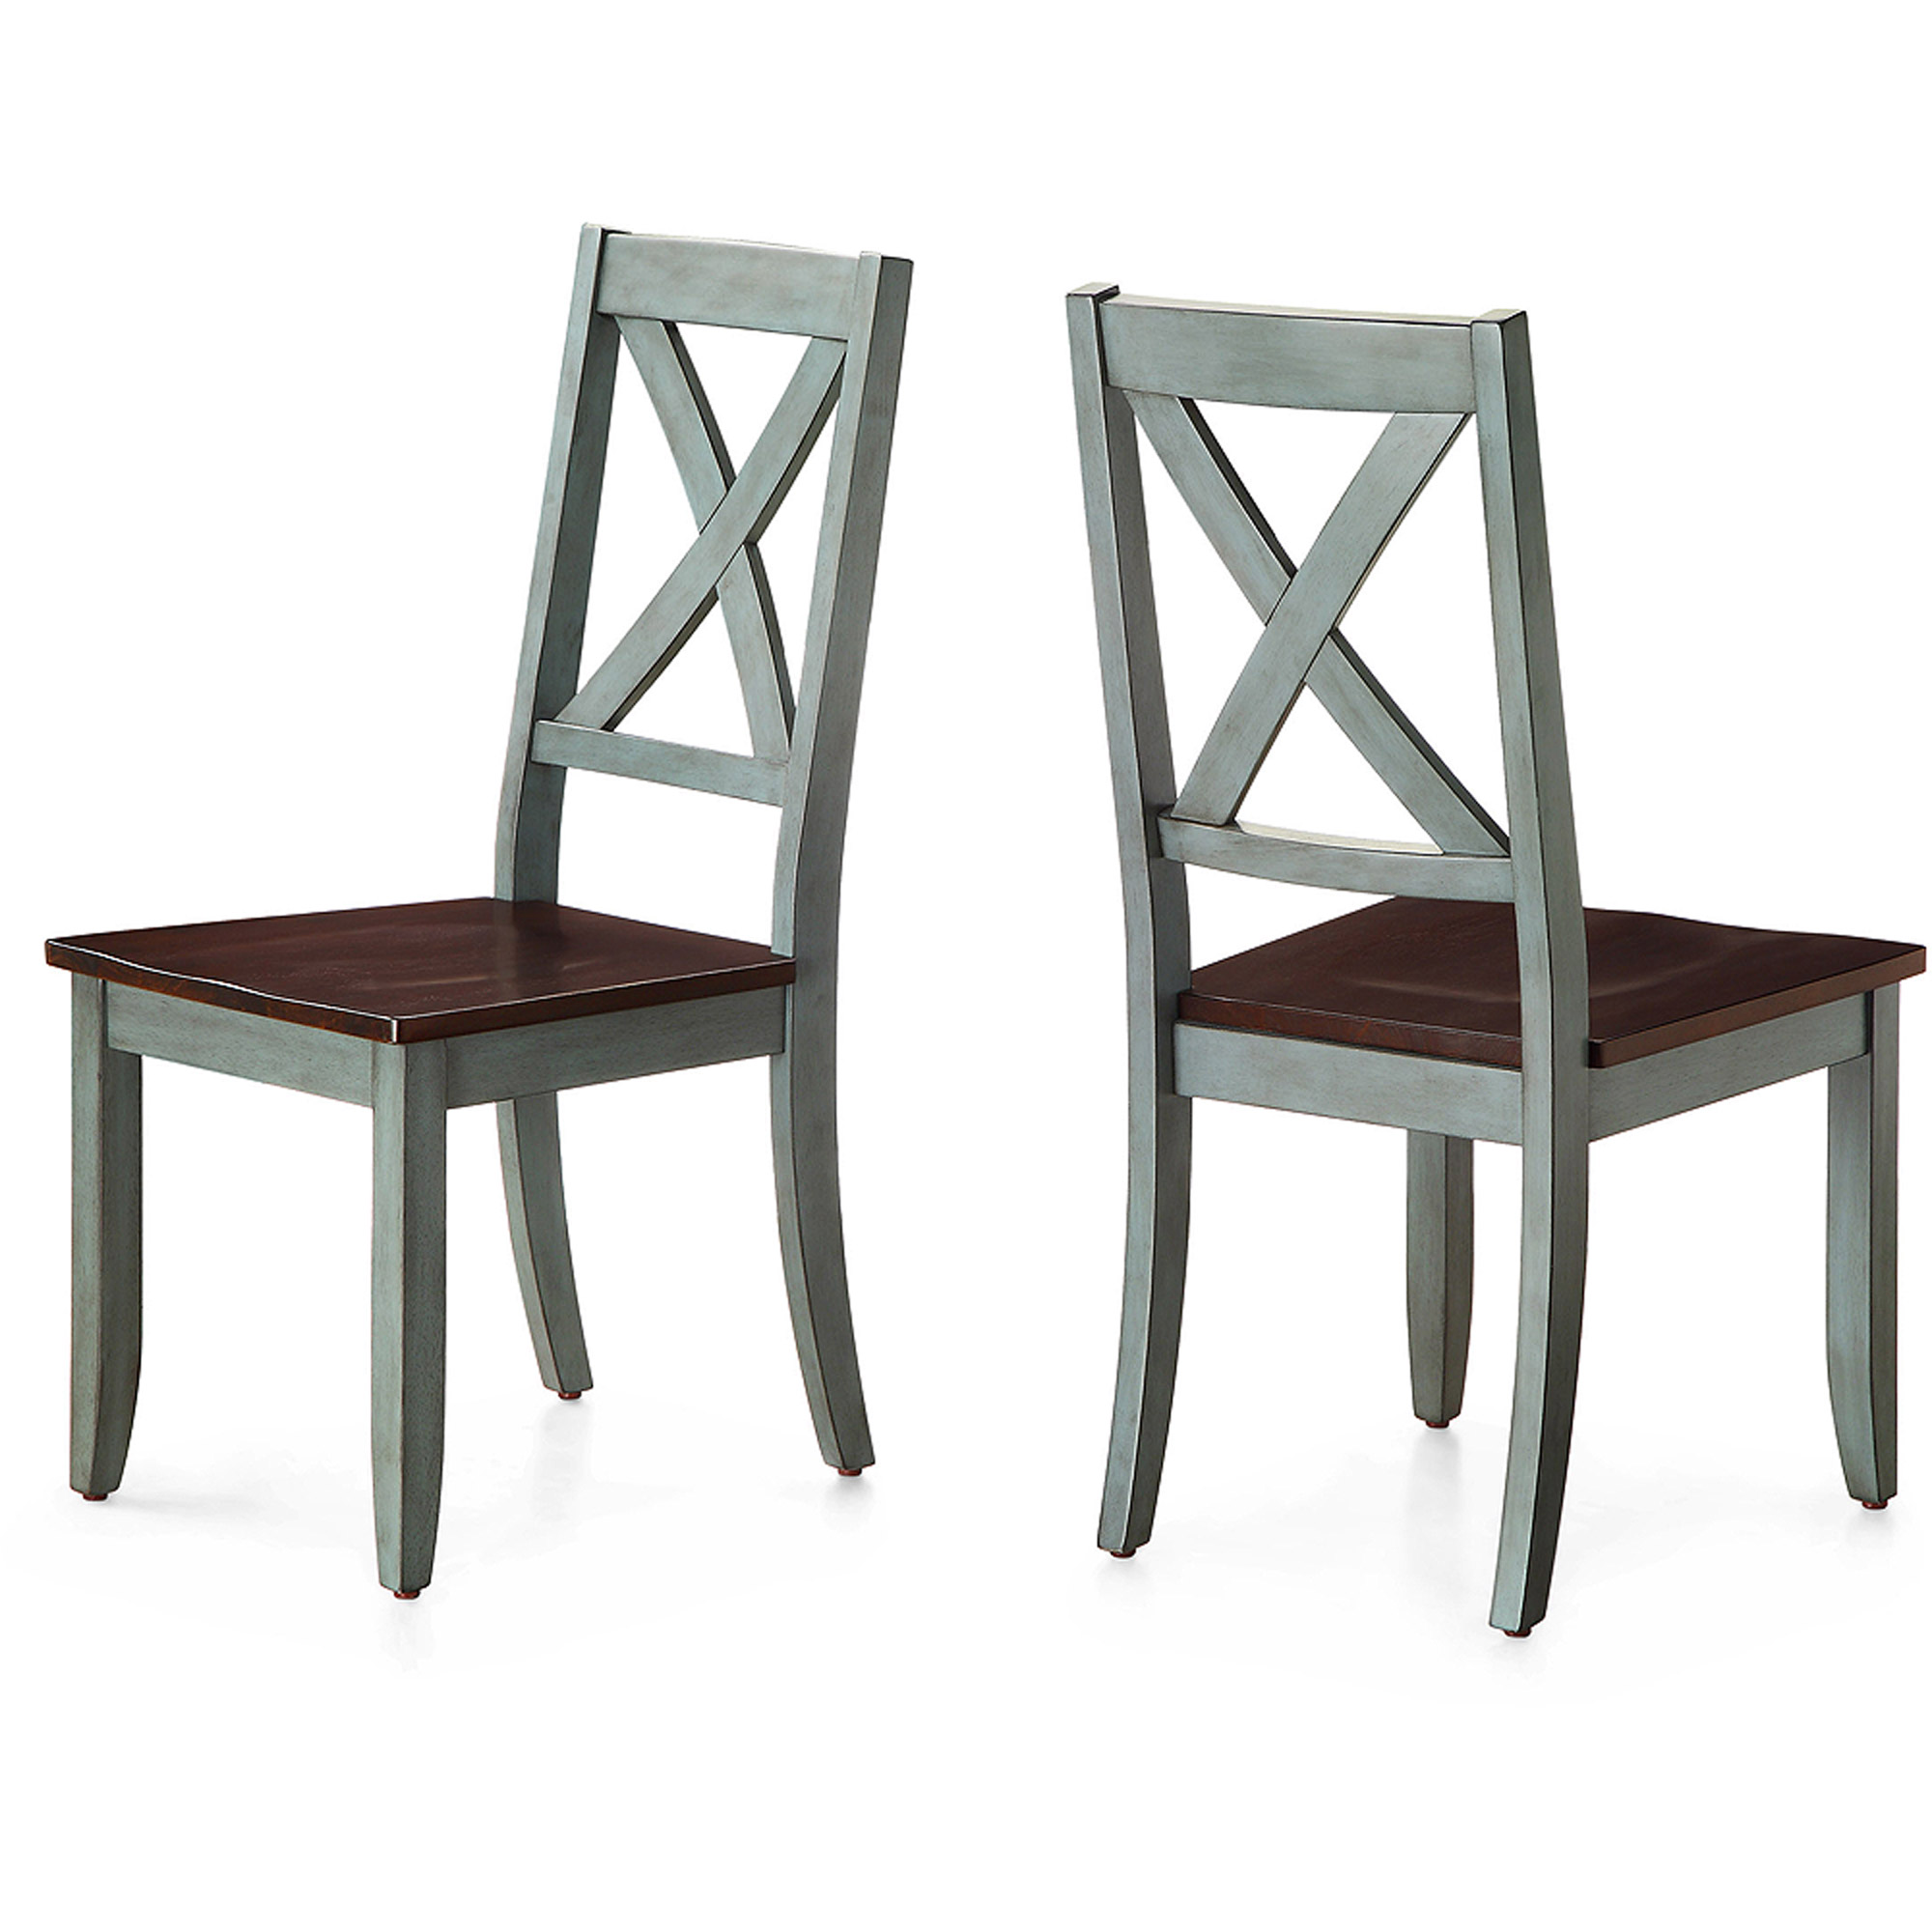 Sturdy Dining Room Chairs Better Homes And Gardens Maddox Crossing Dining Chair Blue Set Of 2